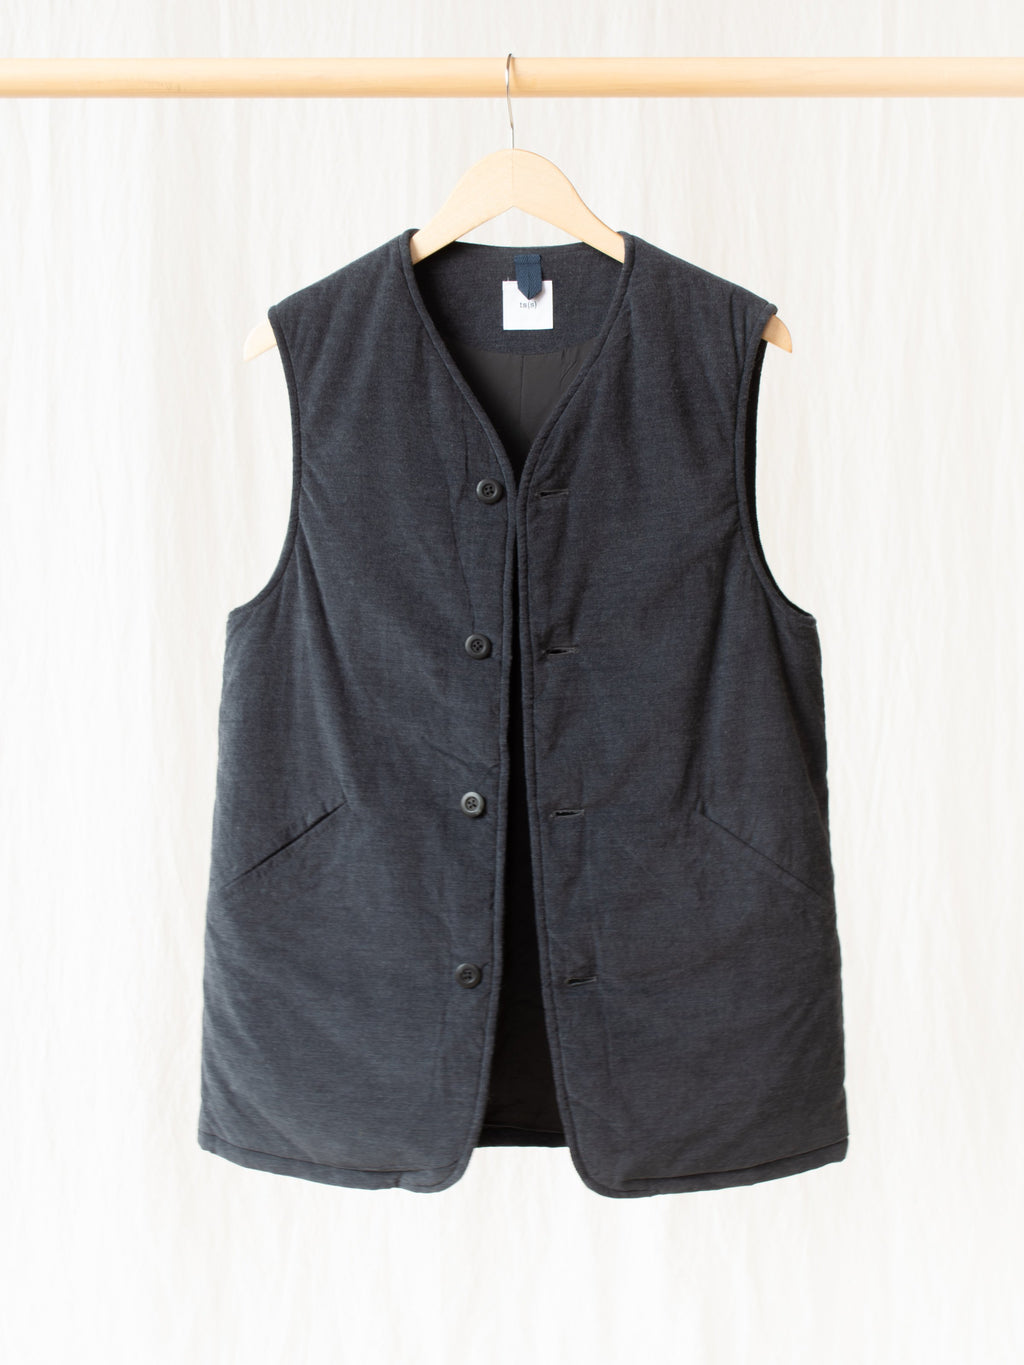 Namu Shop - ts(s) Padded Long Vest - Charcoal Corduroy Wale